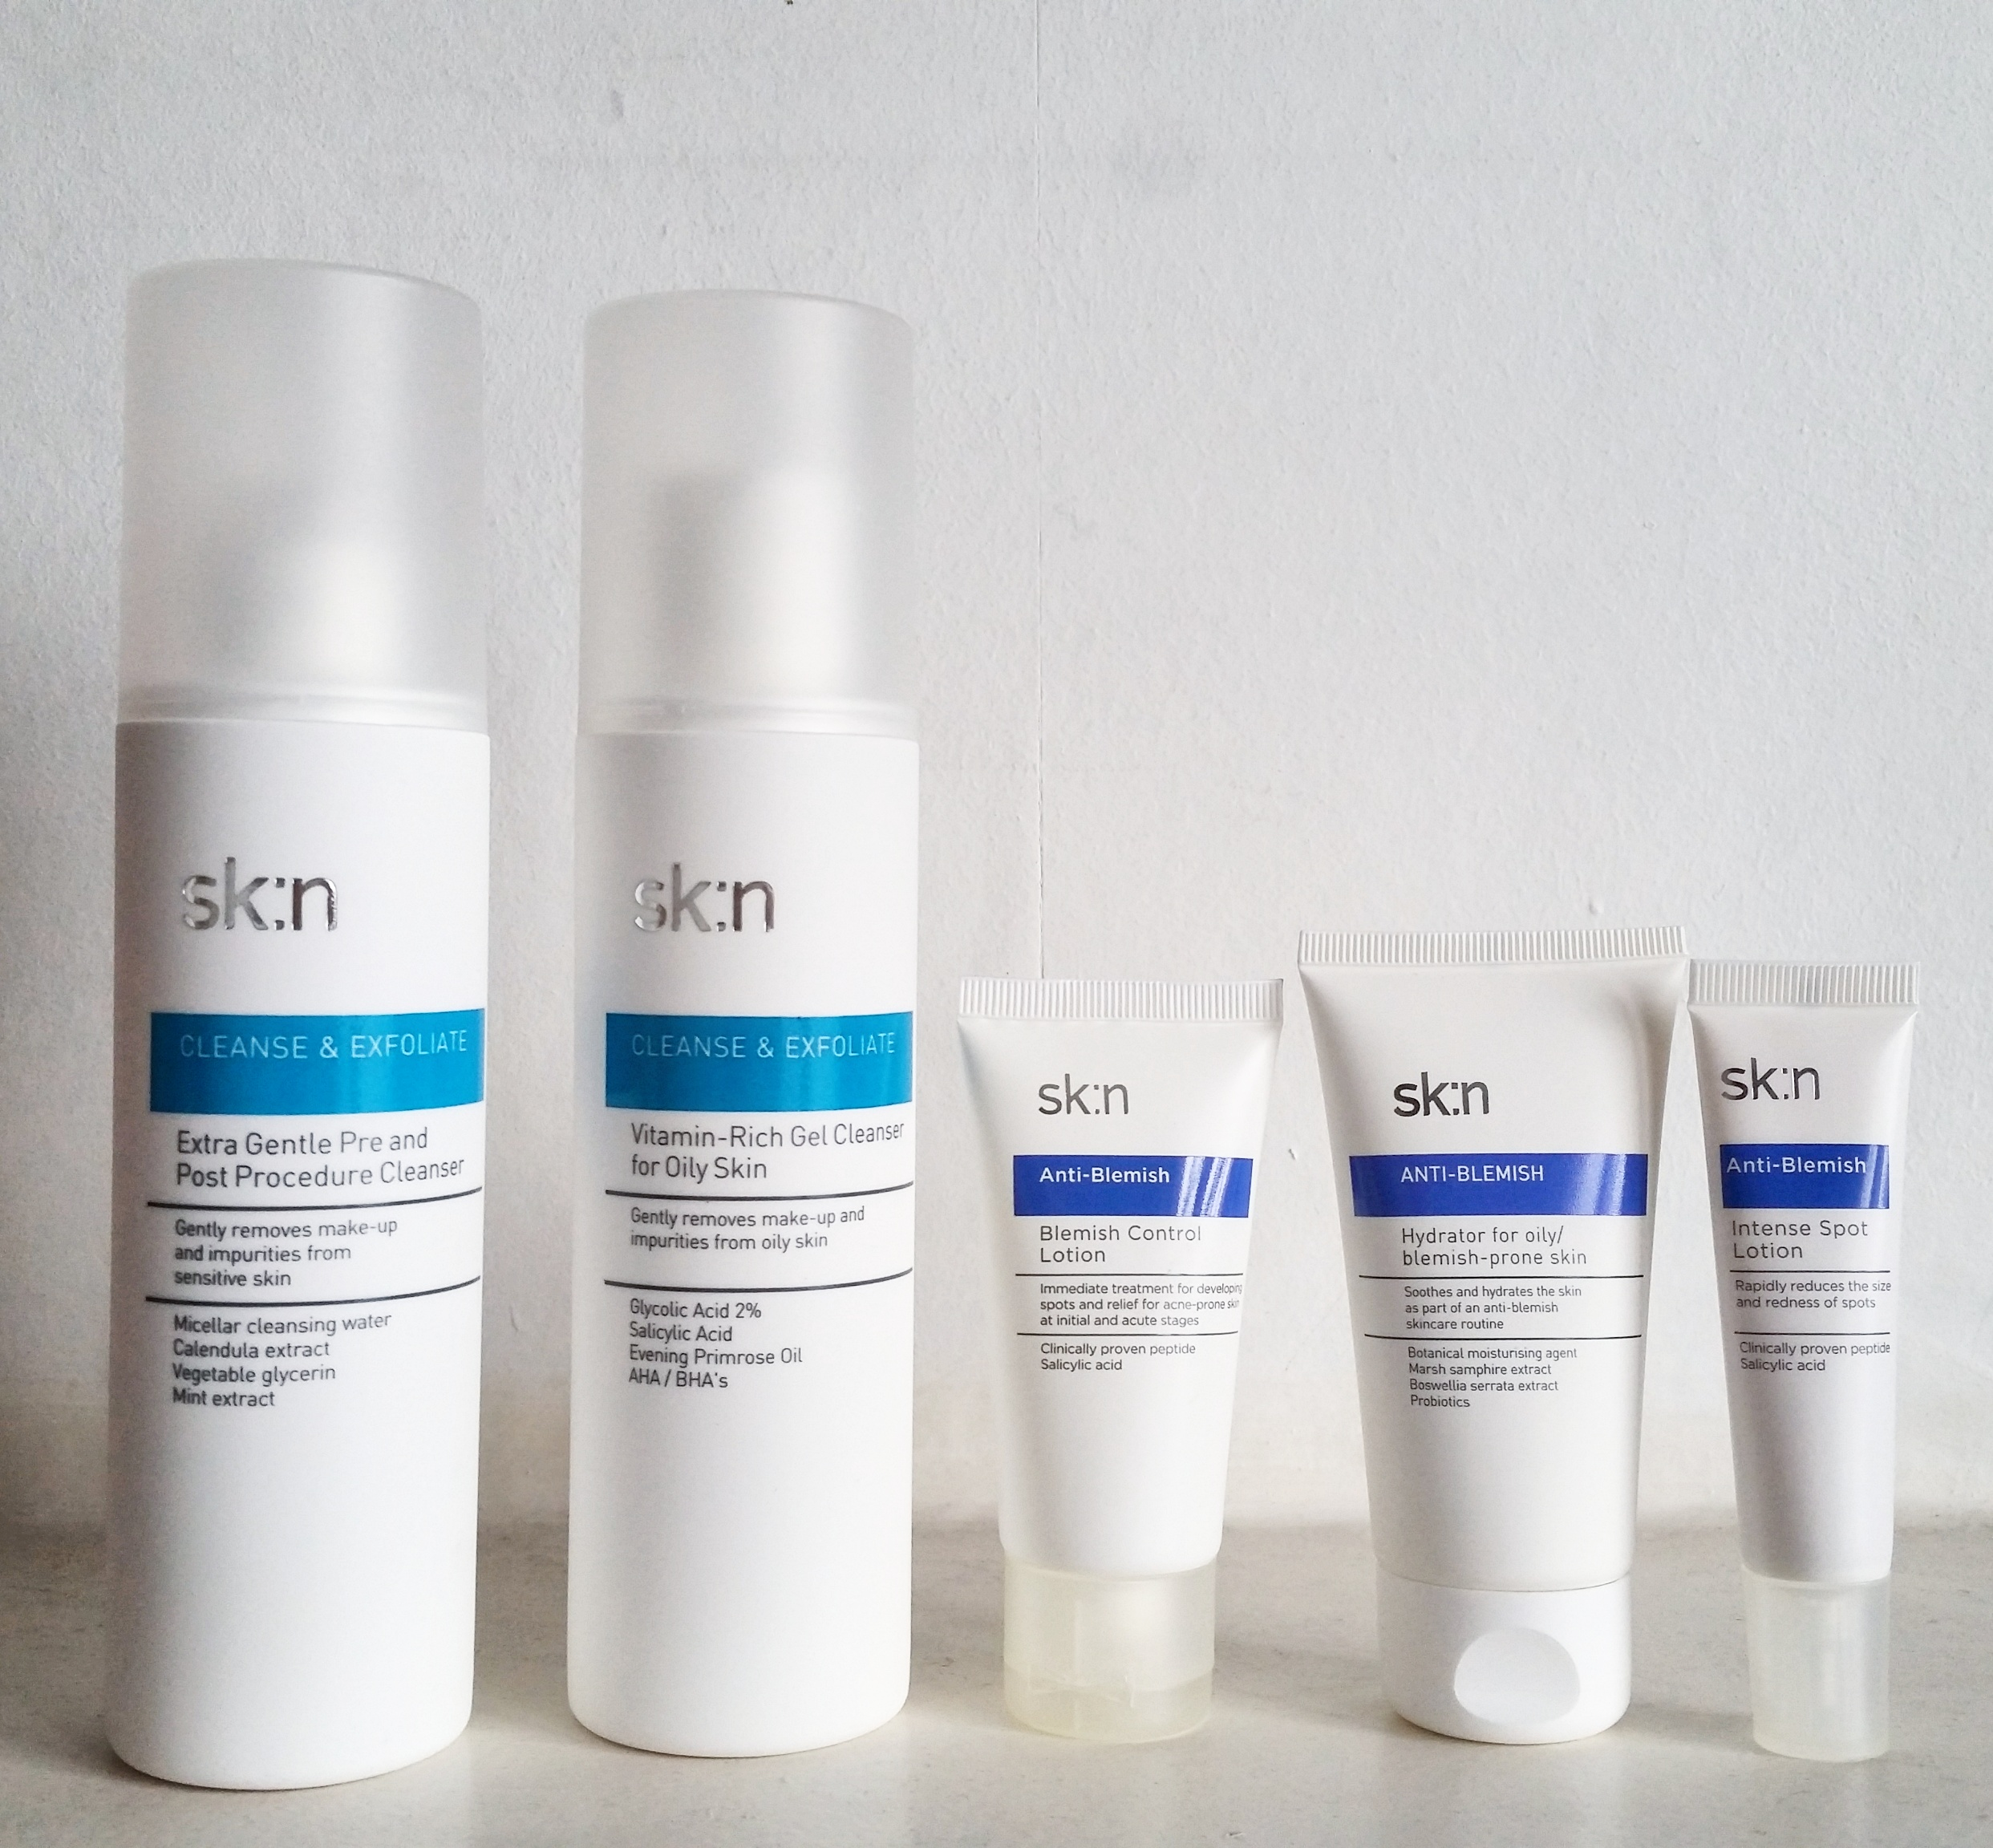 Equipment Colorado Skin Care Supply: Review: Sk:n Products For Oily And Blemish-prone Skin